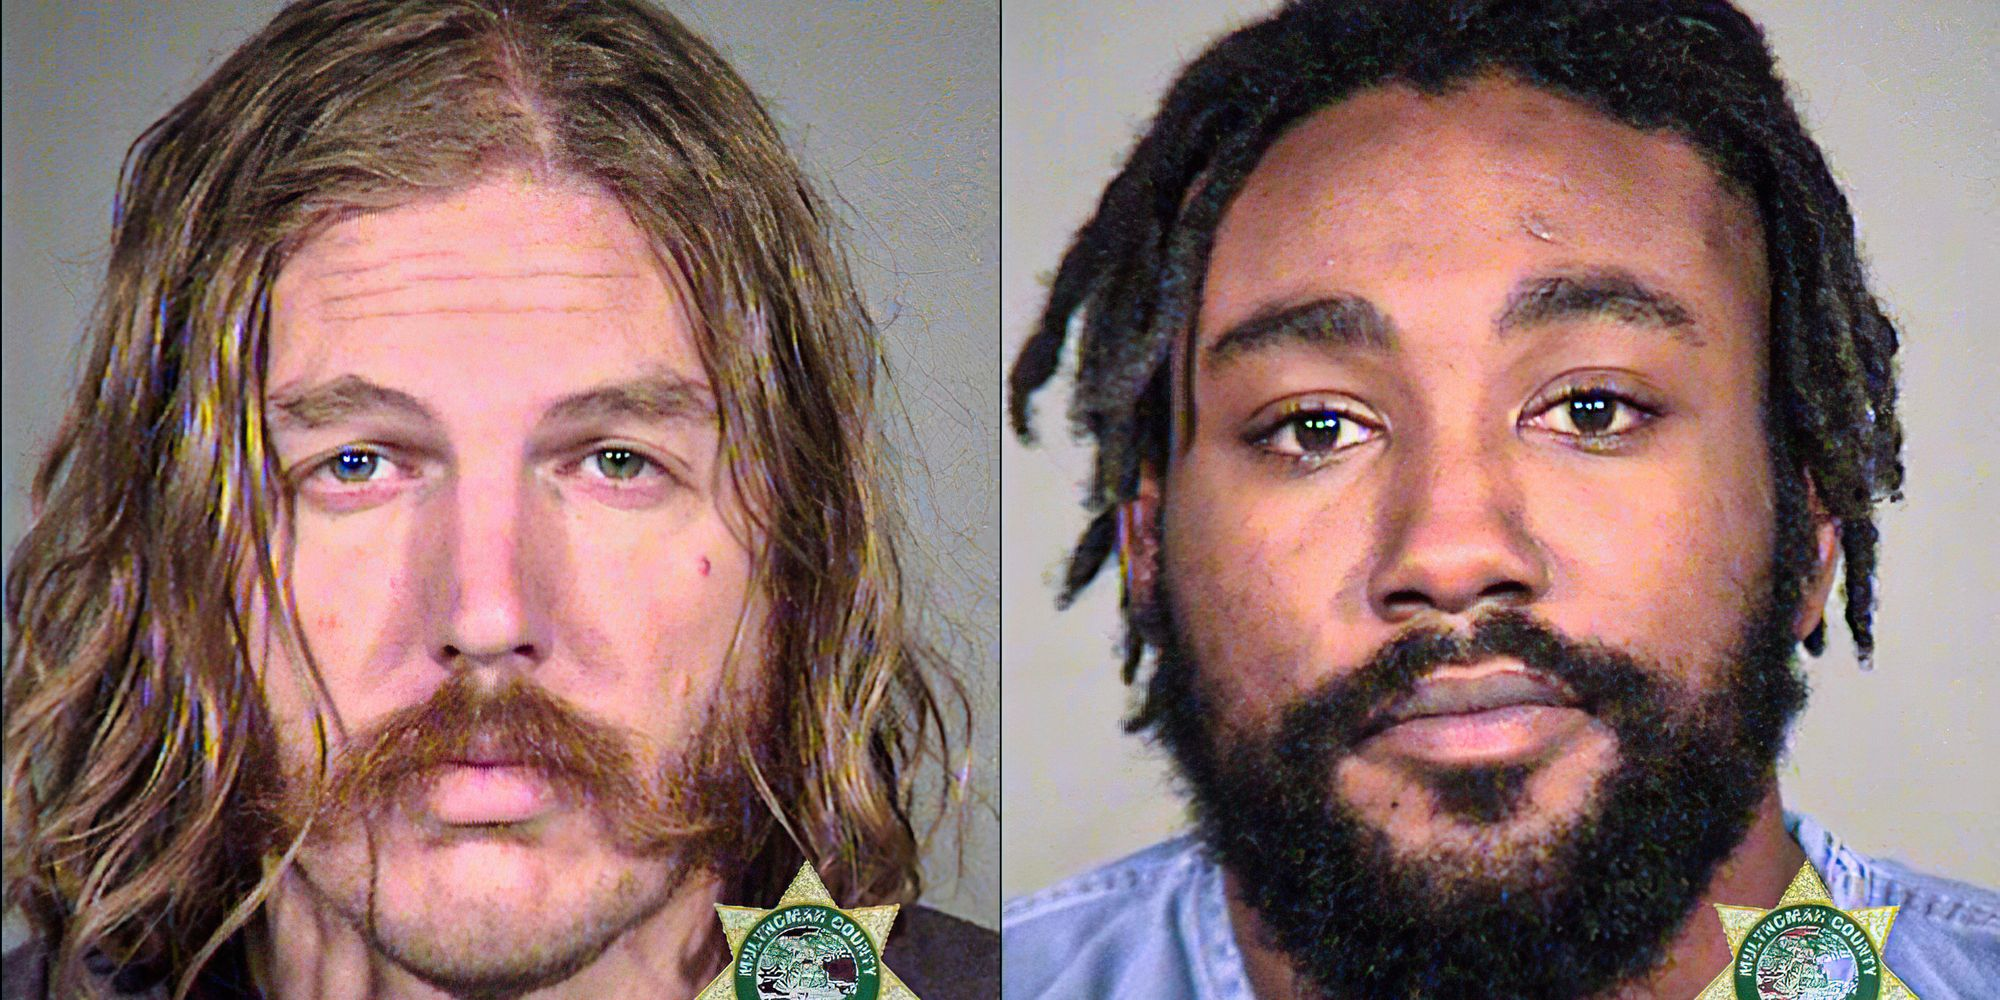 Two charged over statue-toppling riot in Portland